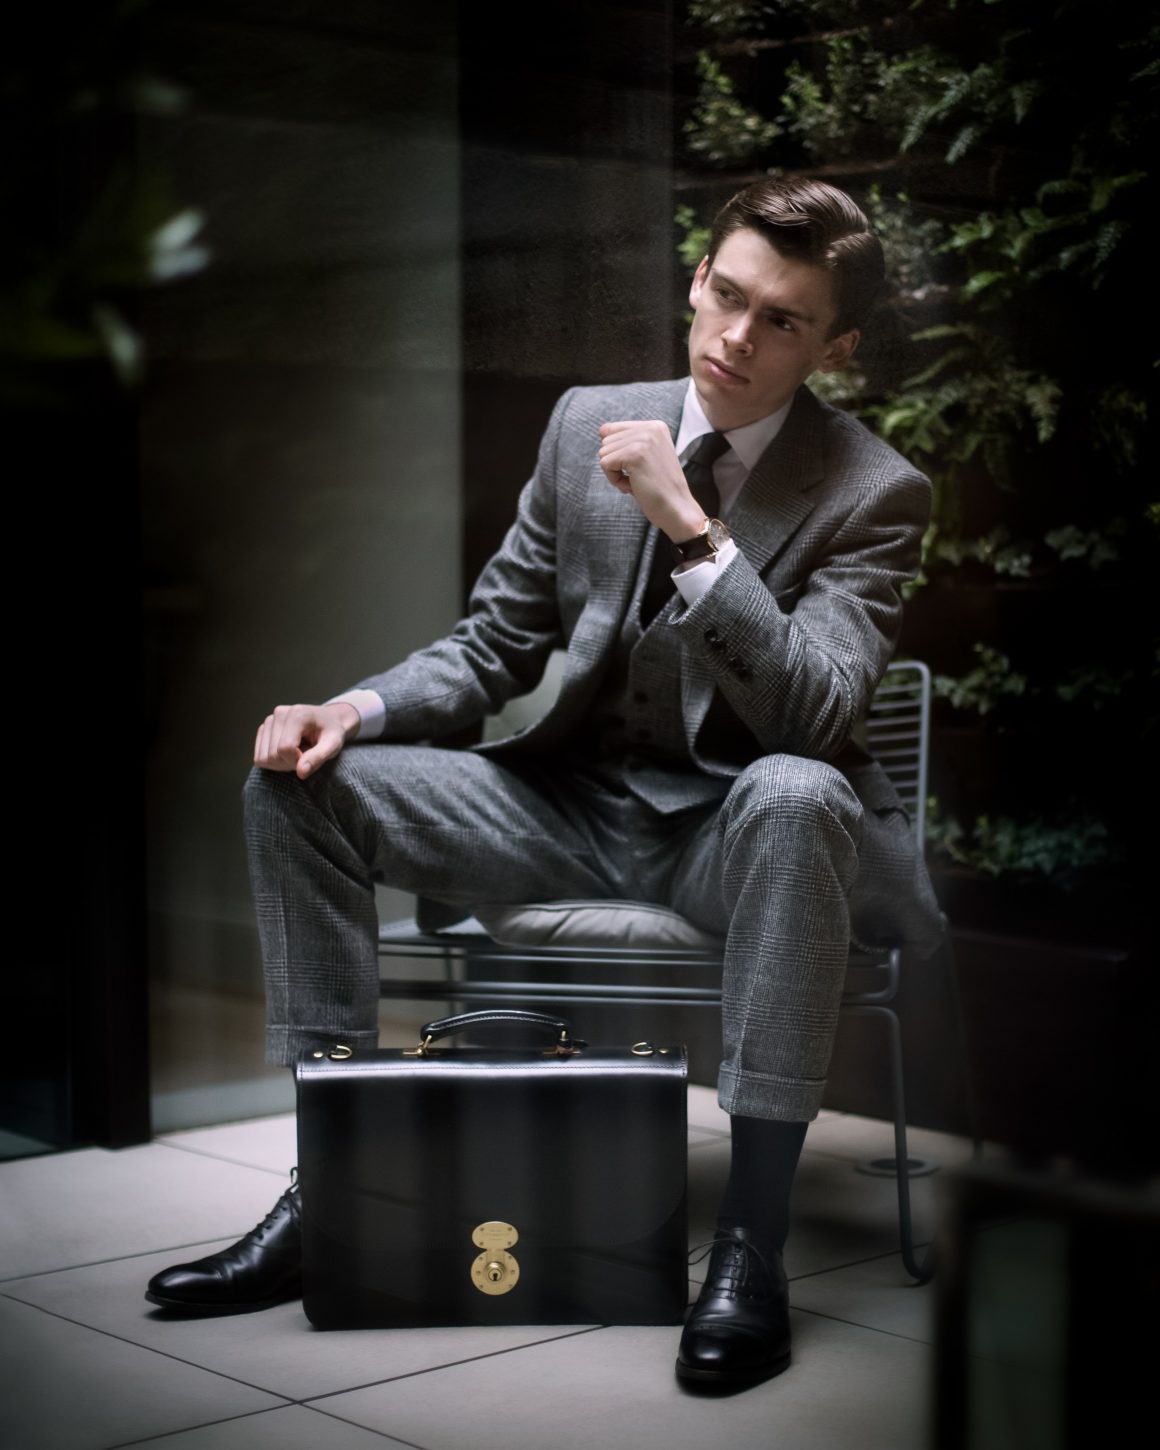 Mathias le Fevre with Ettinger London - Heritage, Westminster Flap-Over Briefcase - wearing Gieves & Hawkes Made to Measure suit